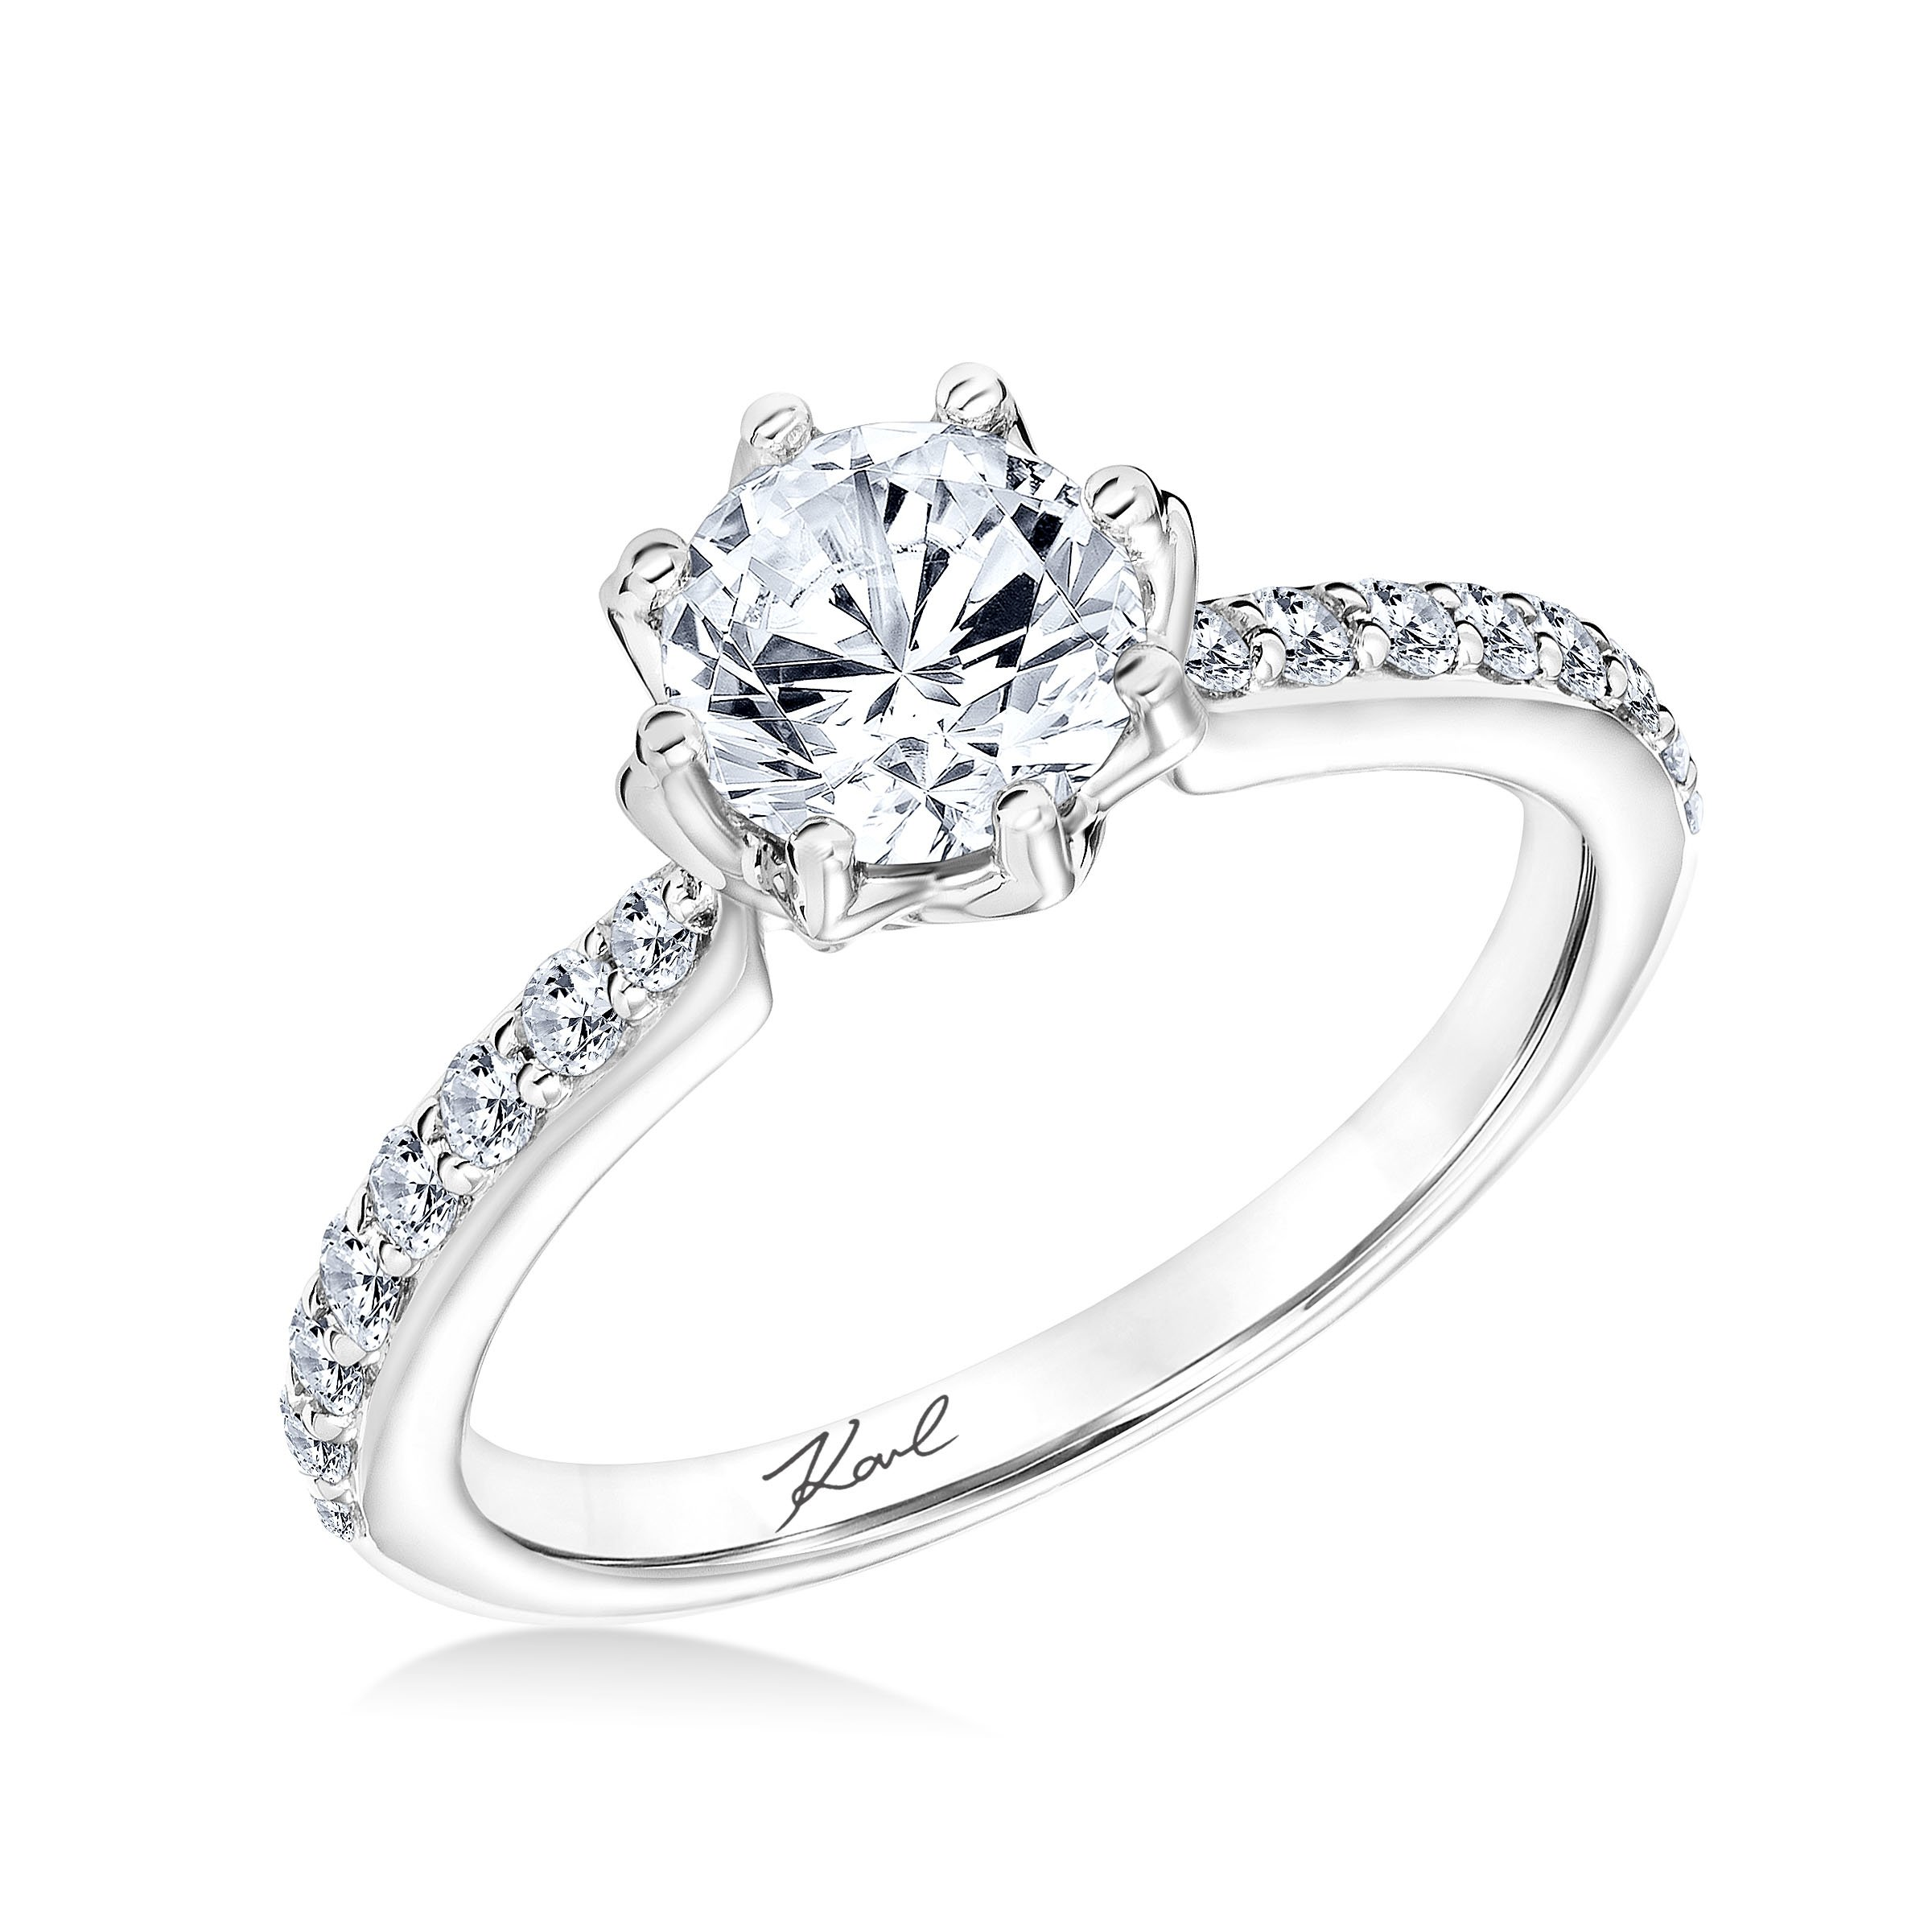 of carat best etched s ring design website rebecca jewellry halo lovely set designs style diamond jewellery bezel